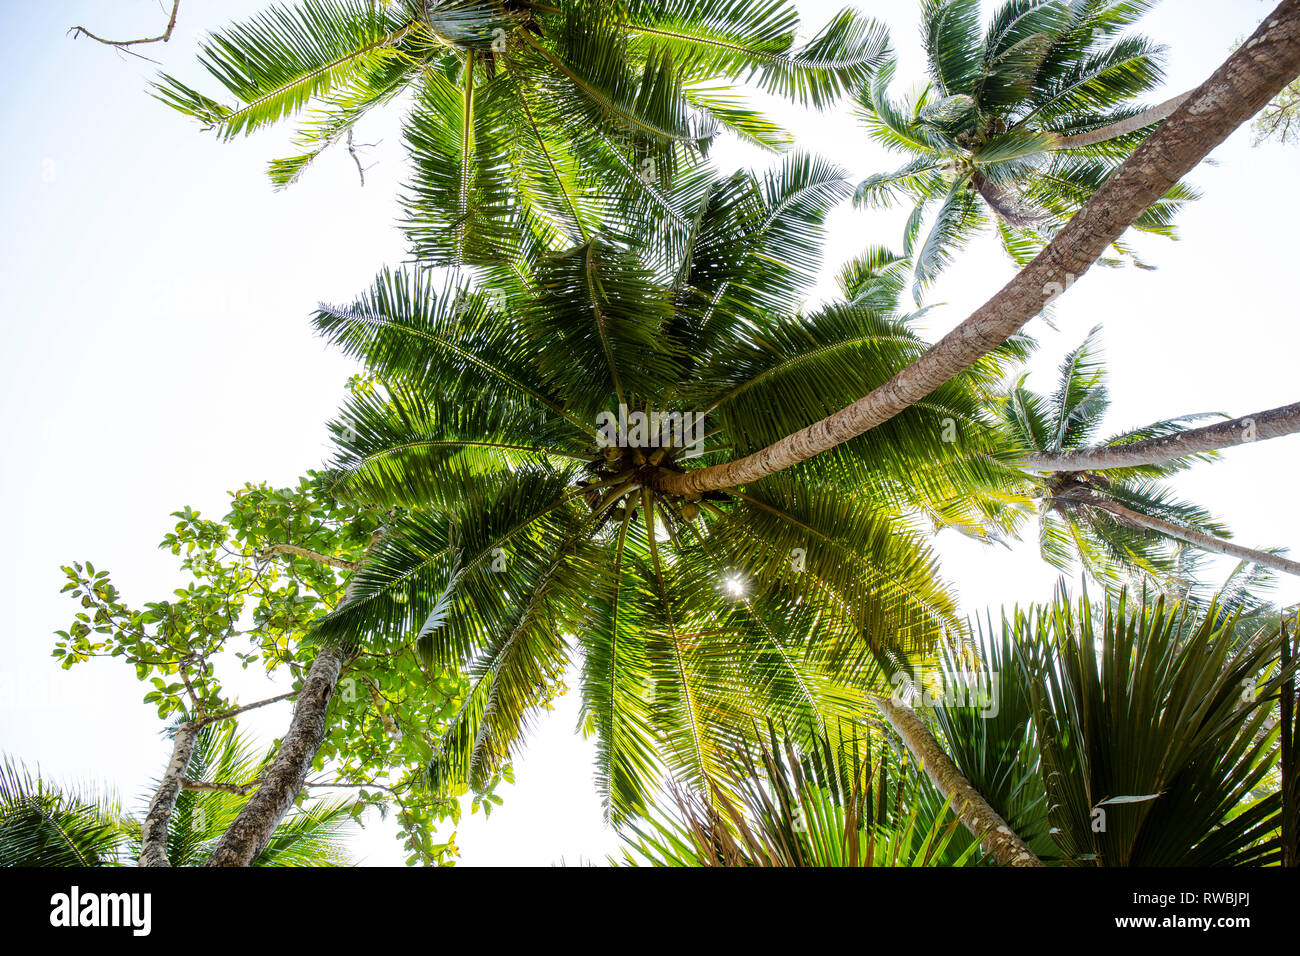 Coconut Palm trees as seen from below - Stock Image